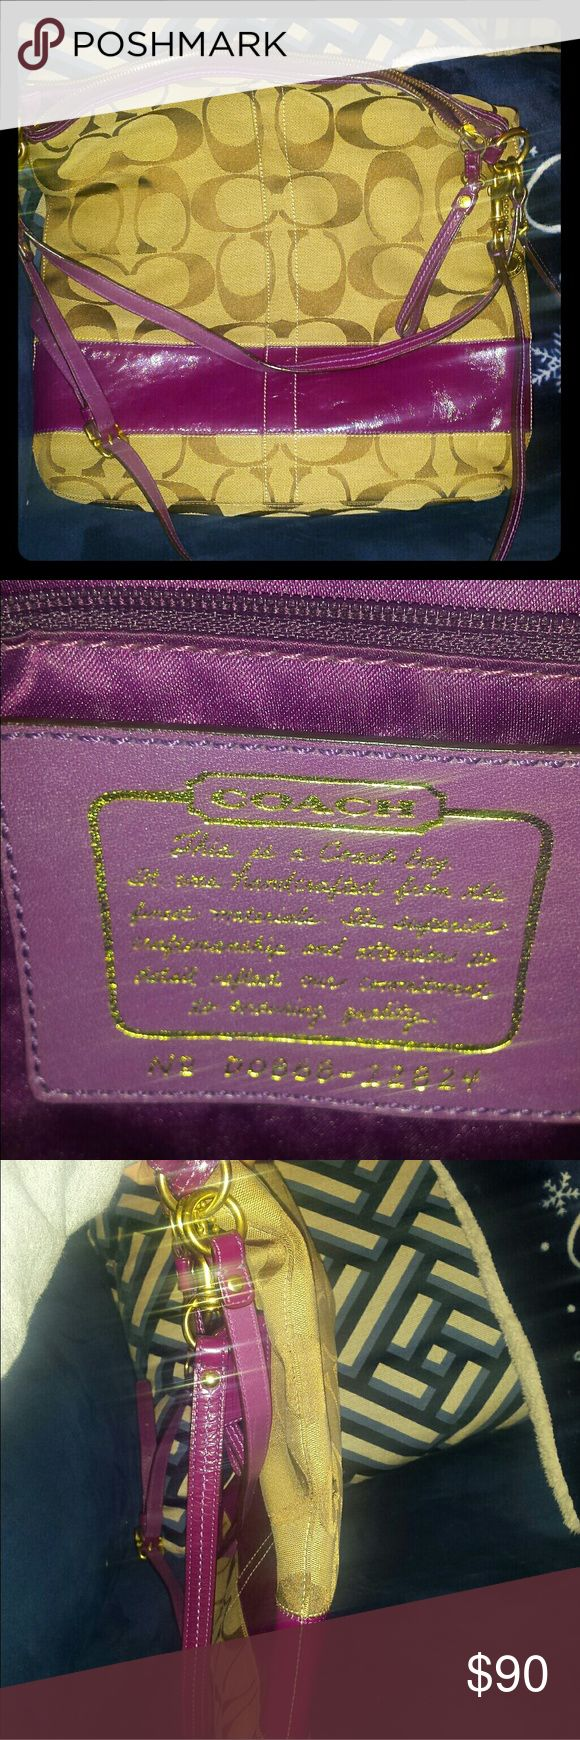 Authentic Signature Coach Messenger Bag Large, beautiful messenger bag, 3 ways to wear, removable straps, no rips or stains. Used a handful of times. Great condition! Coach Bags Crossbody Bags